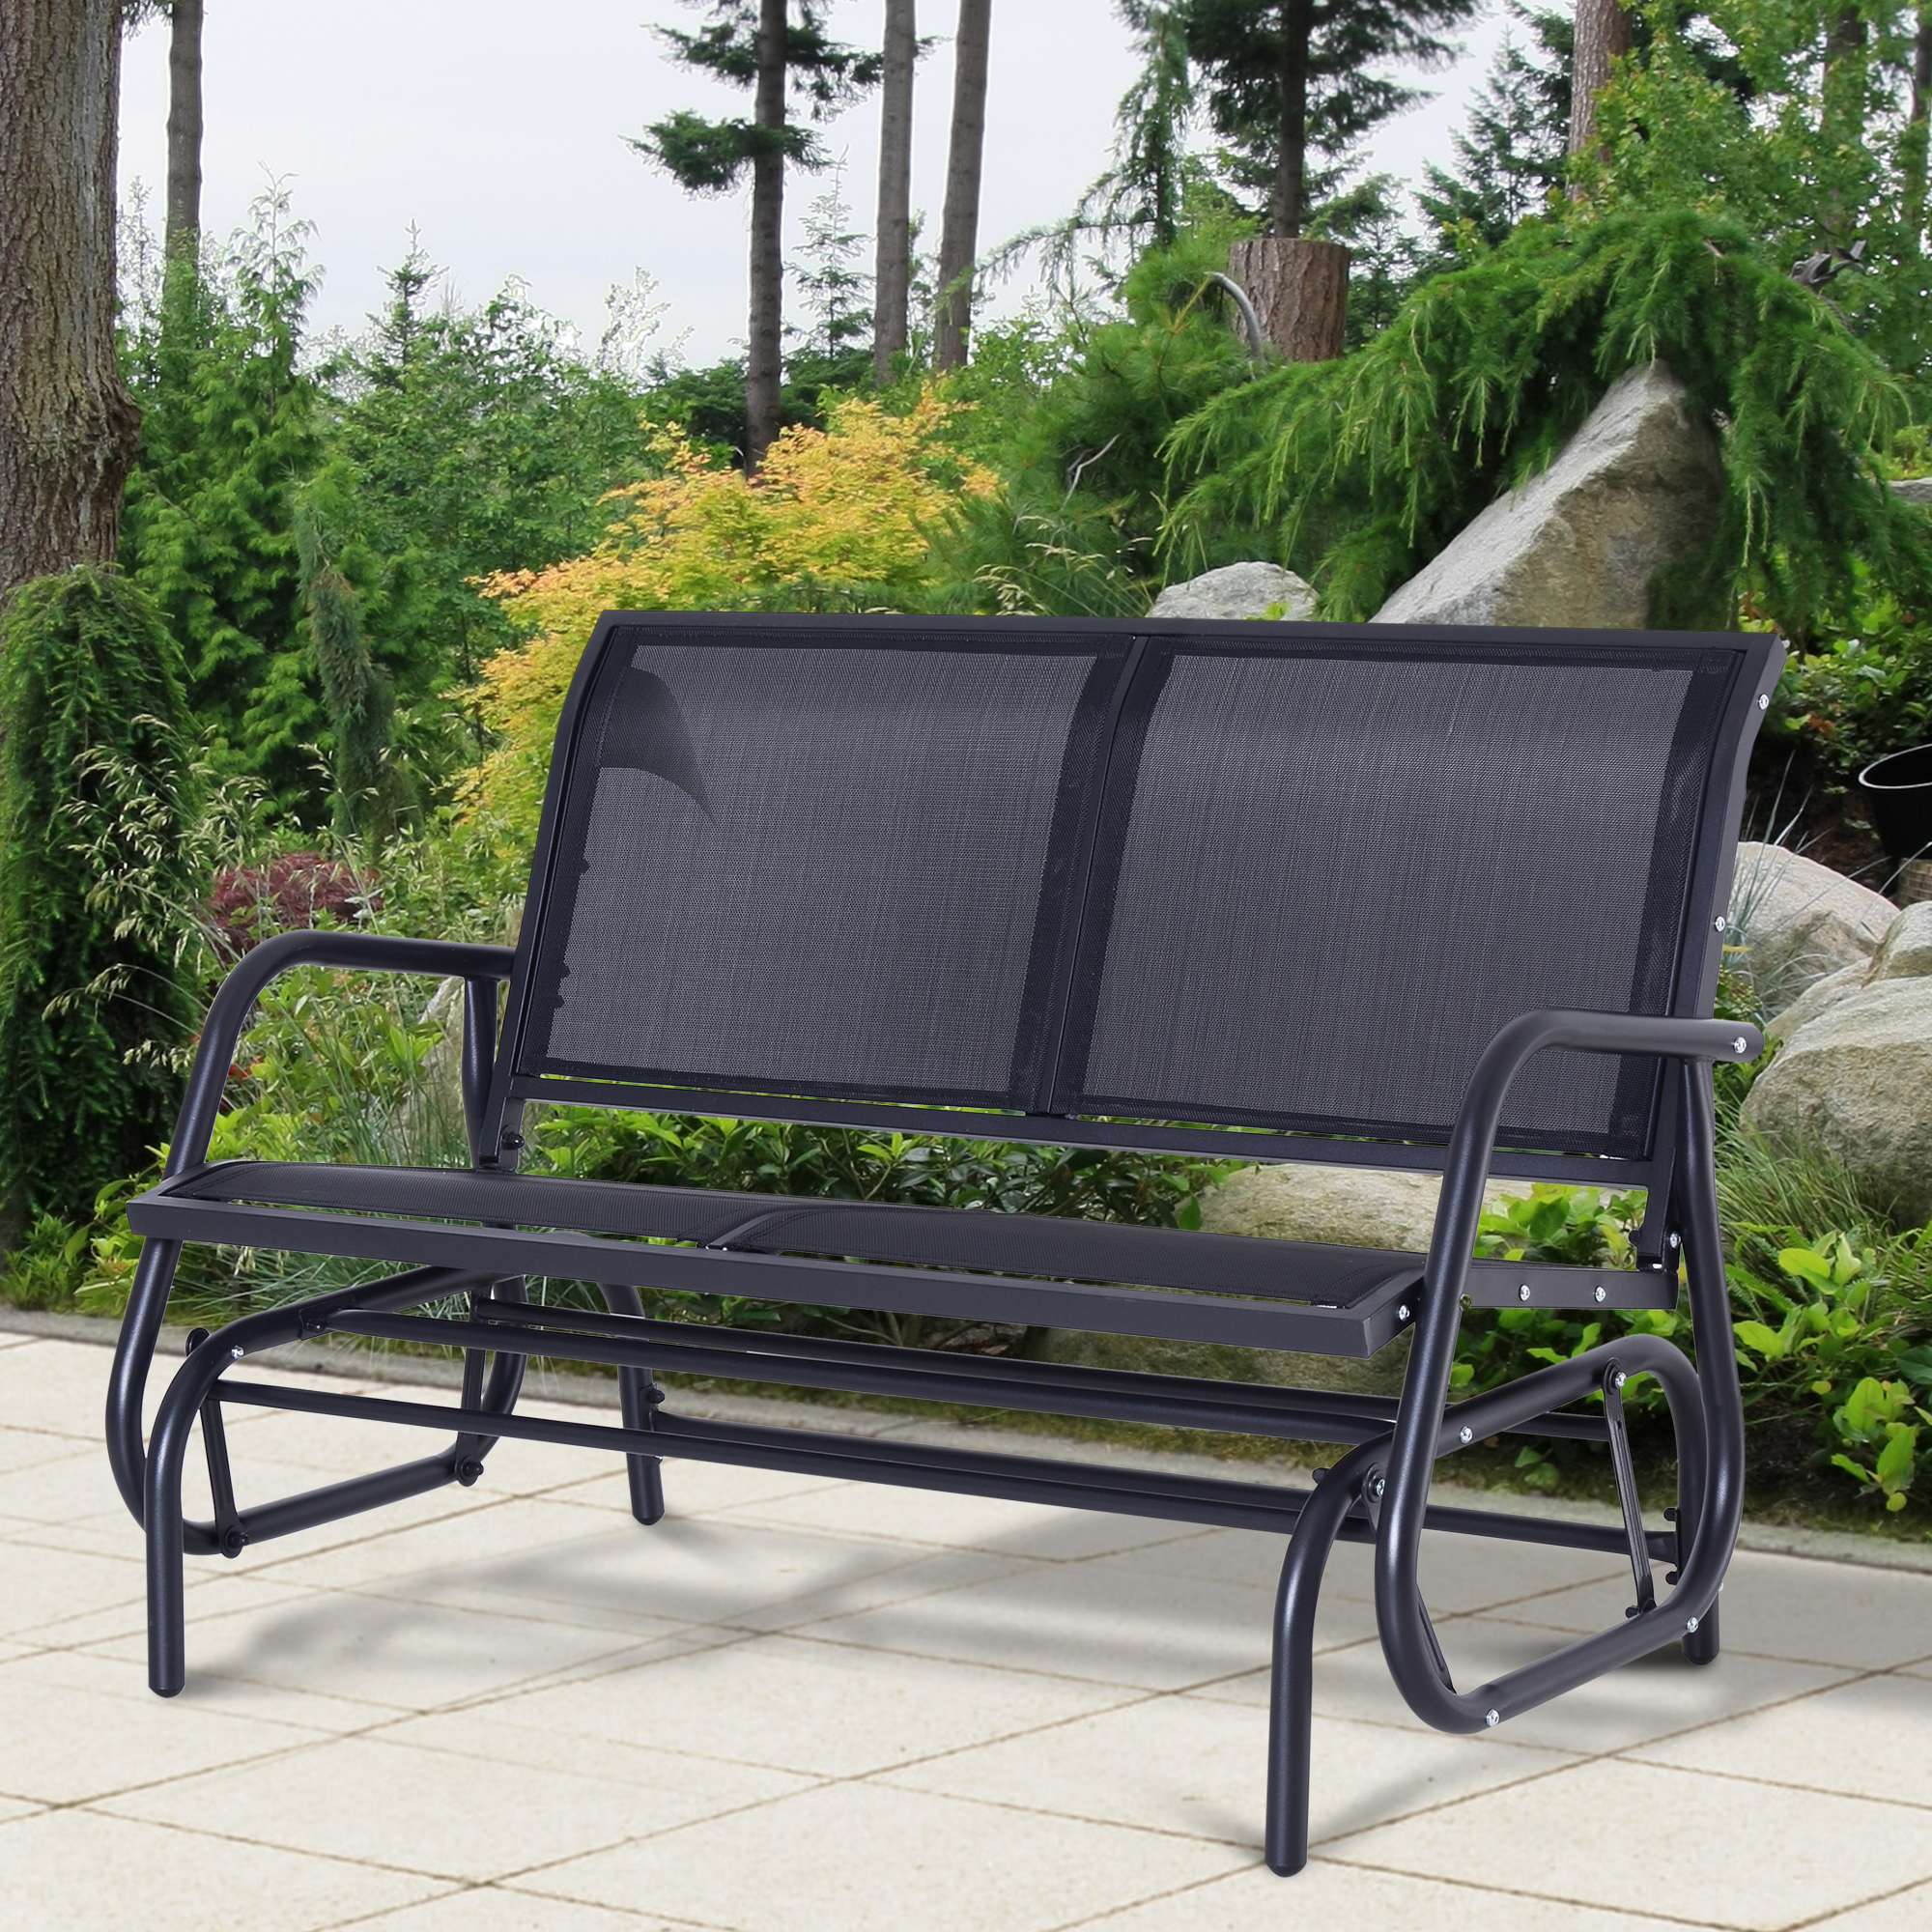 Details About Outsunny Patio Garden Glider Bench 2 Person Double Swing Chair Rocker Deck Black Throughout Favorite Iron Double Patio Glider Benches (View 12 of 30)